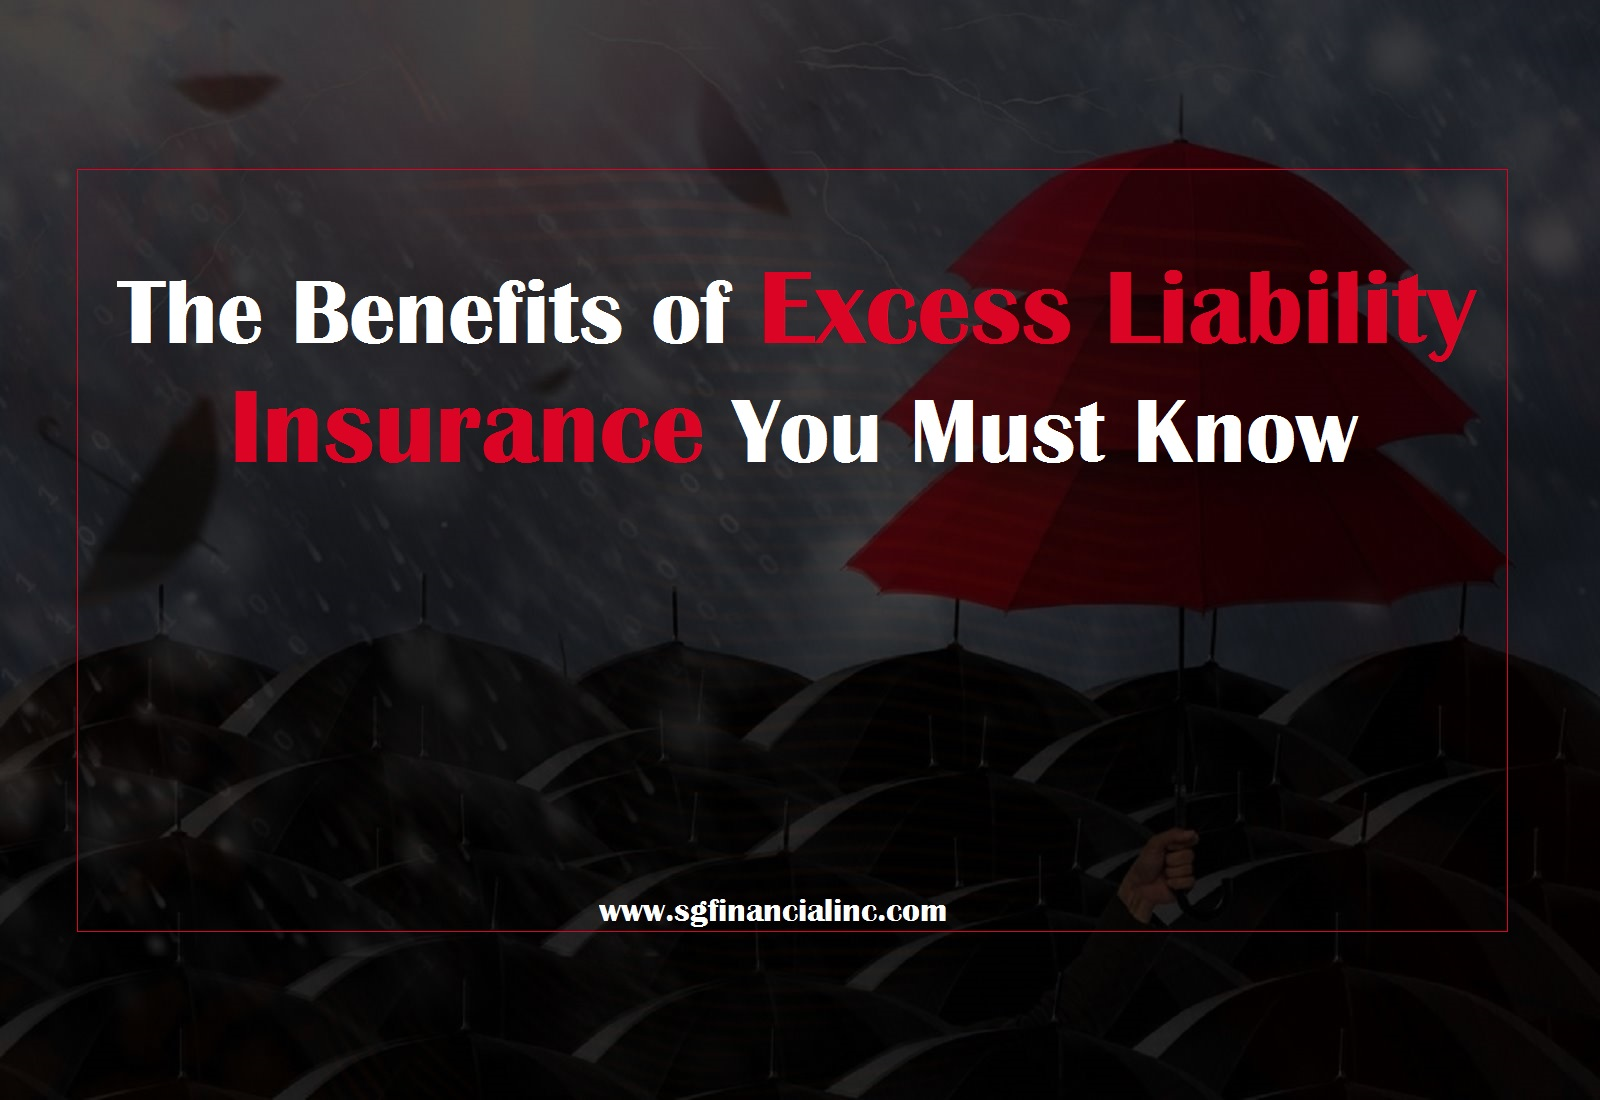 The Benefits of Excess Liability Insurance You Must Know